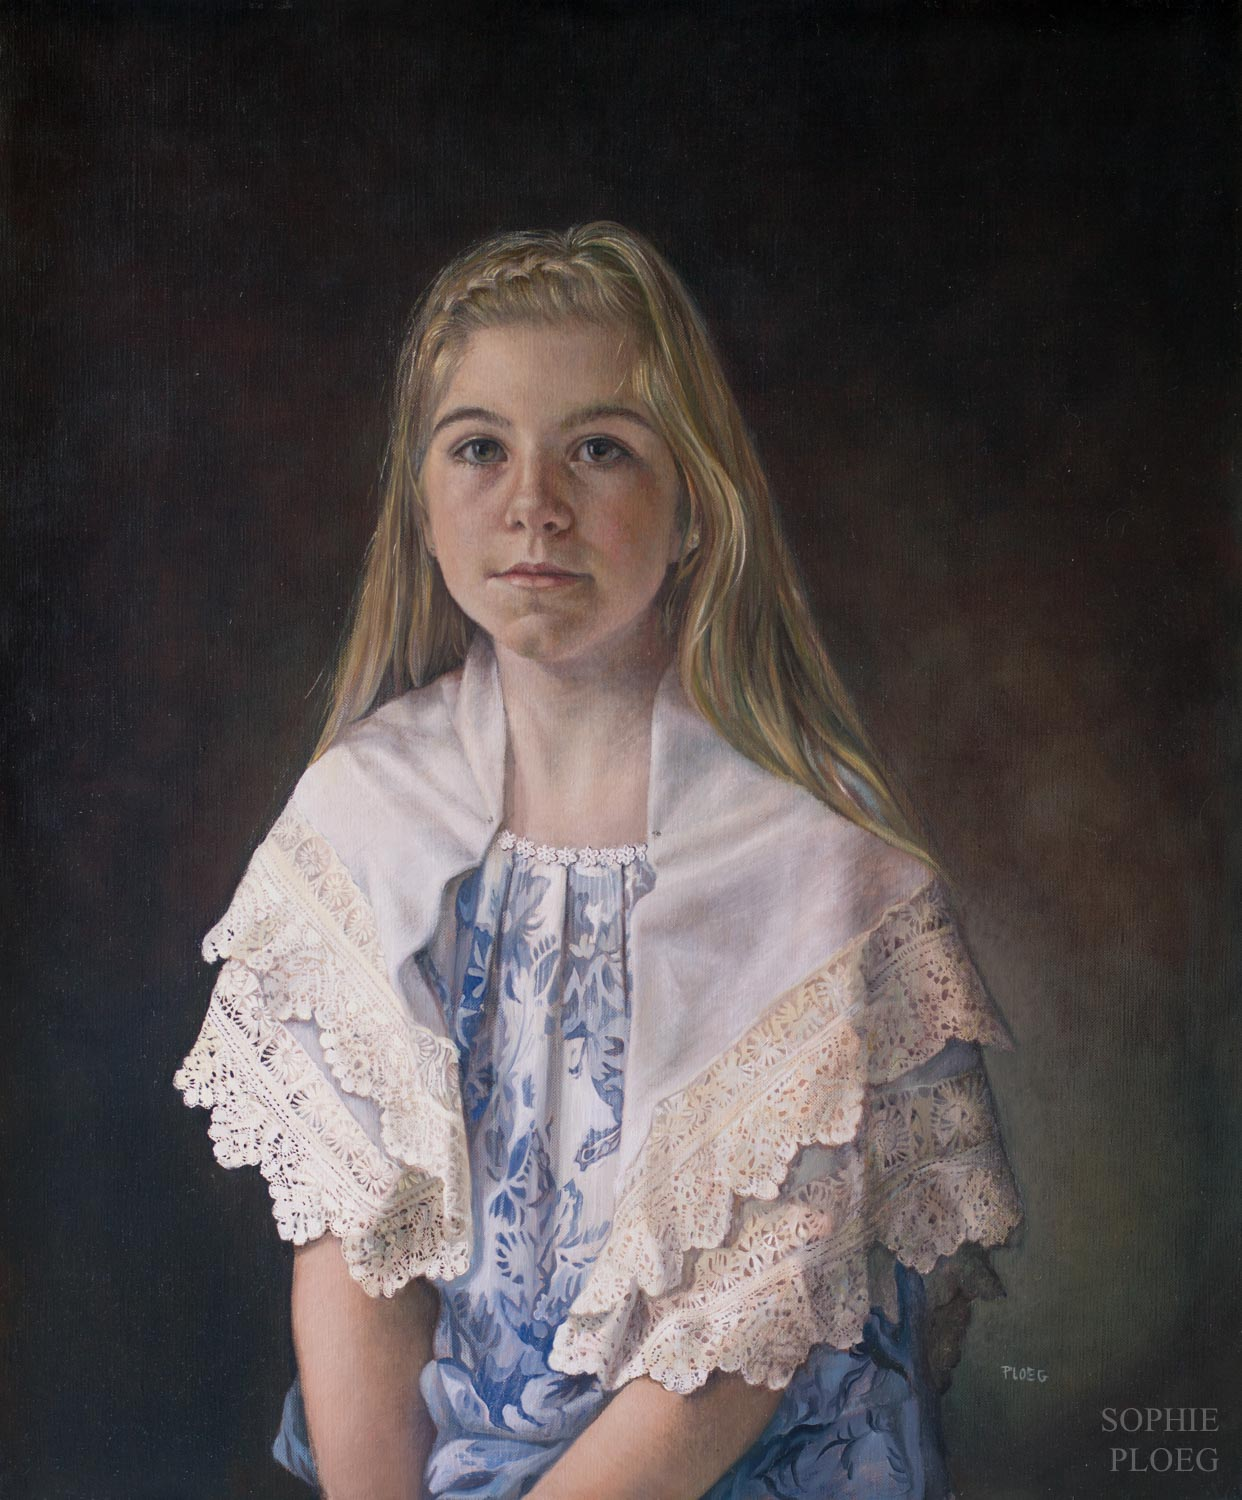 Sophie Ploeg, The Lacemaker, oil on linen